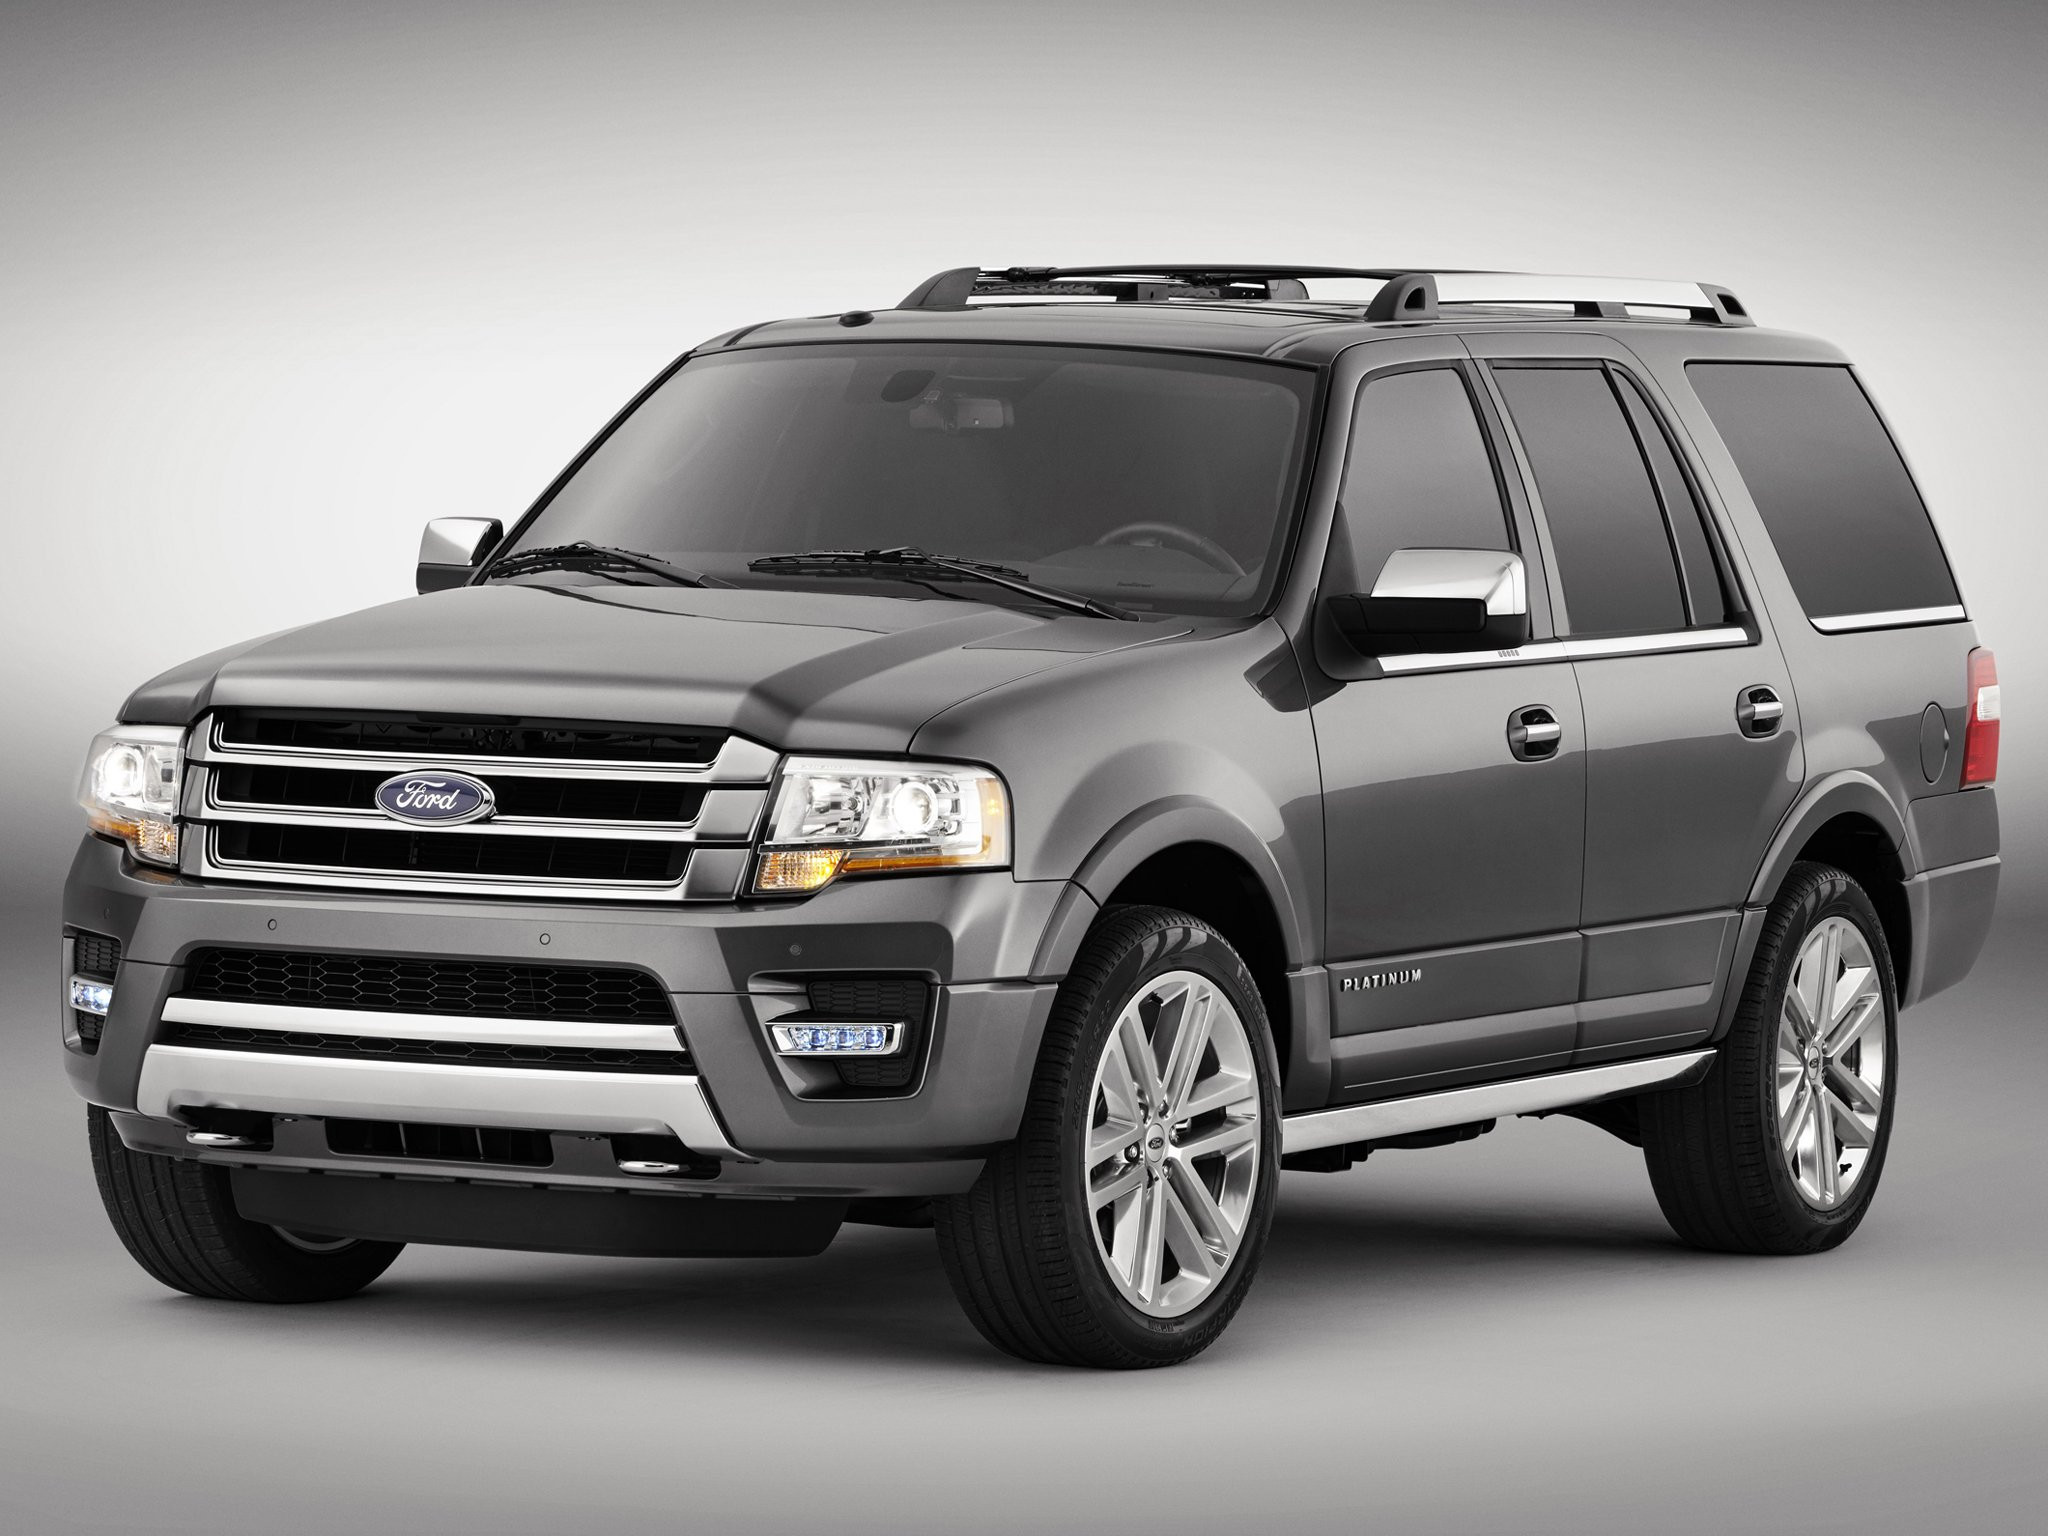 2014 ford expedition suv g wallpaper 2048x1536 268607. Black Bedroom Furniture Sets. Home Design Ideas